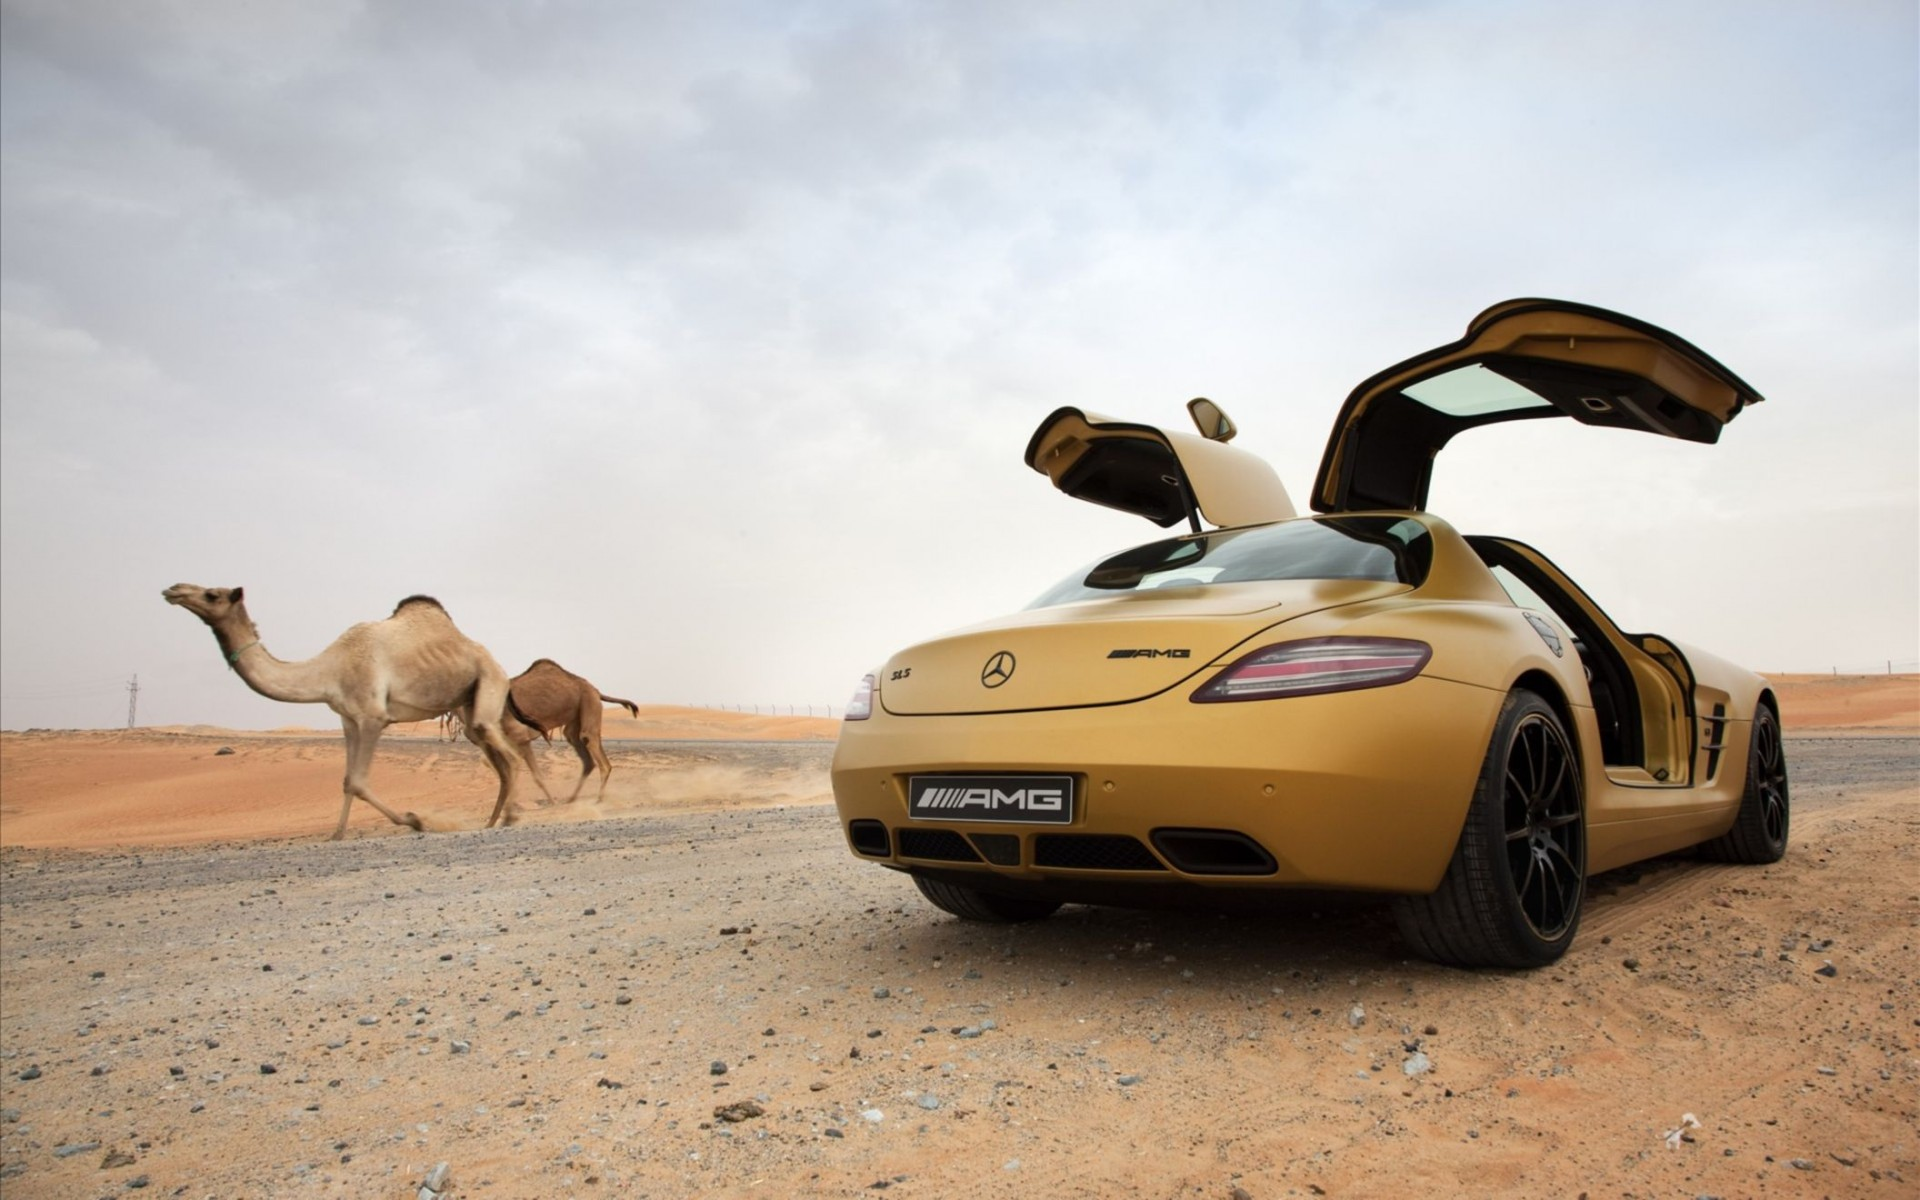 2010 Mercedes Benz Sls Amg Desert Gold 8 Wide Wallpaper